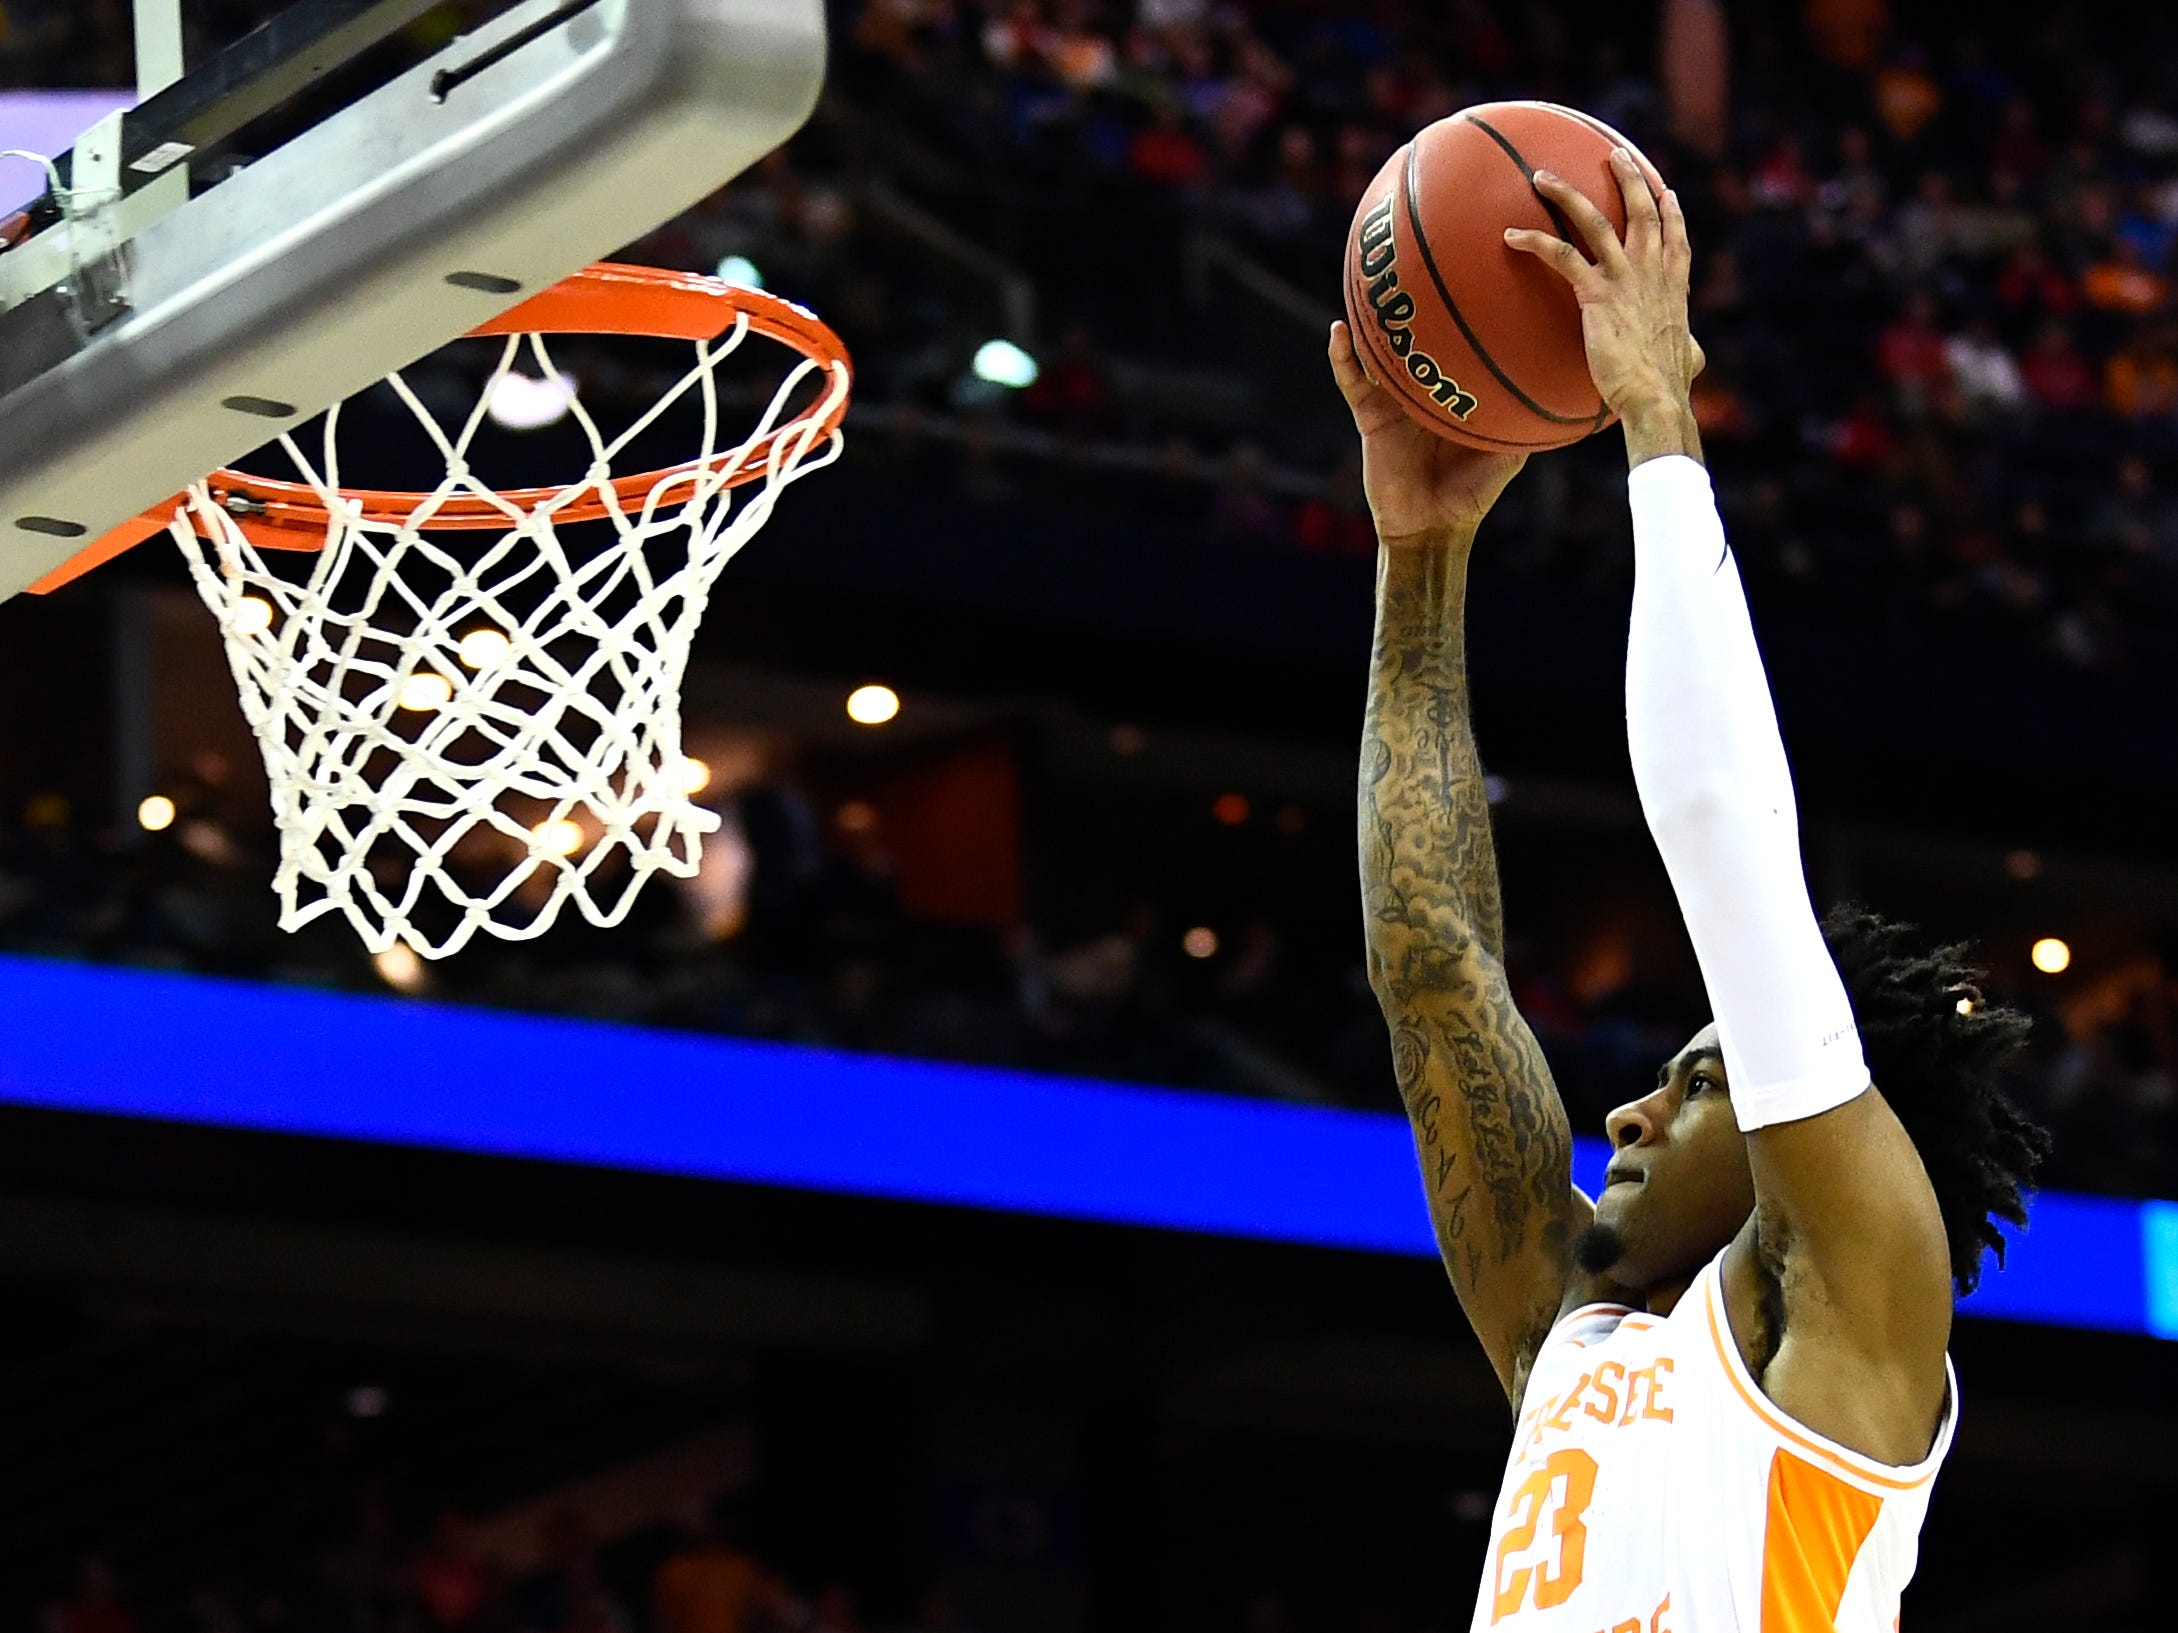 Tennessee guard Jordan Bowden (23) goes in for a dunk against the Colgate Raiders in the first round of the NCAA Tournament at Nationwide Arena in Columbus, Ohio, on Friday, March 22, 2019.